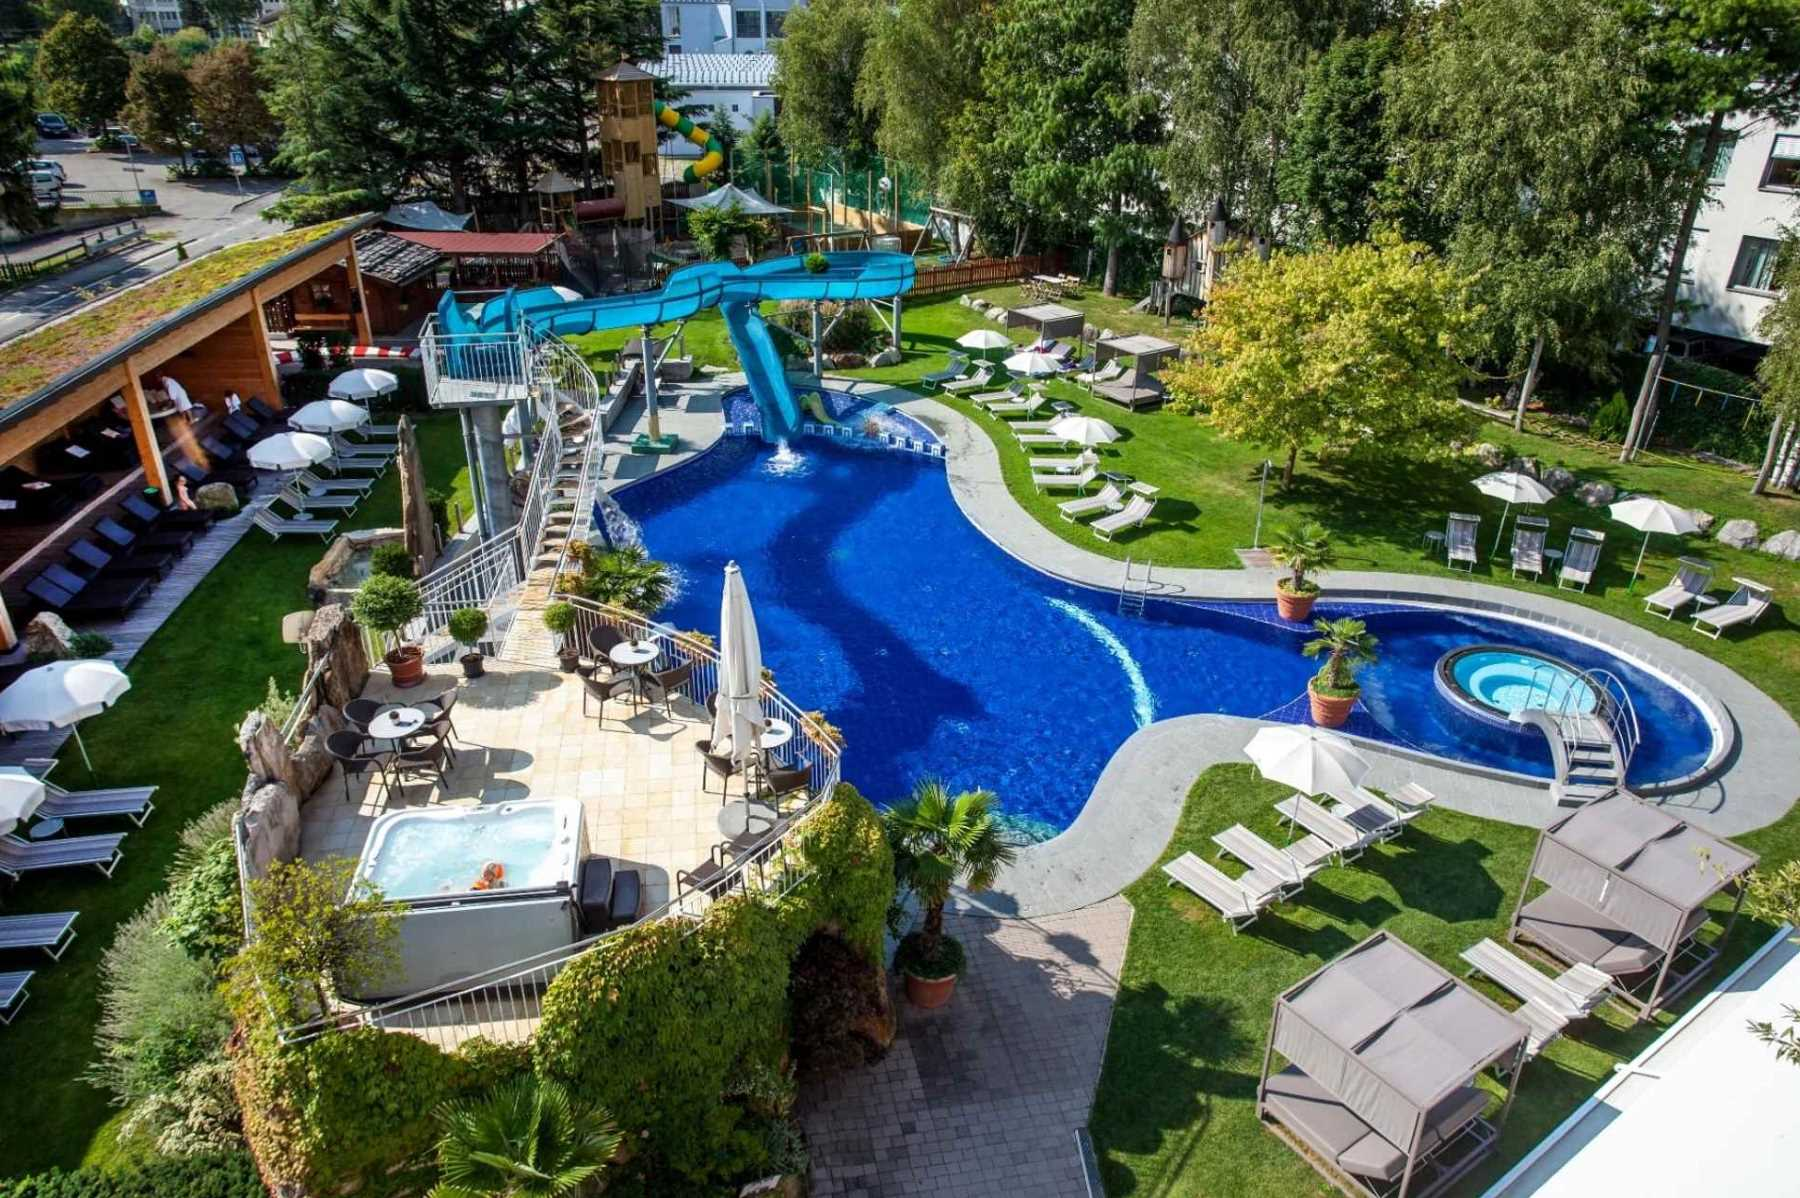 Familien-Wellness Residence Tyrol vacanza per bambini